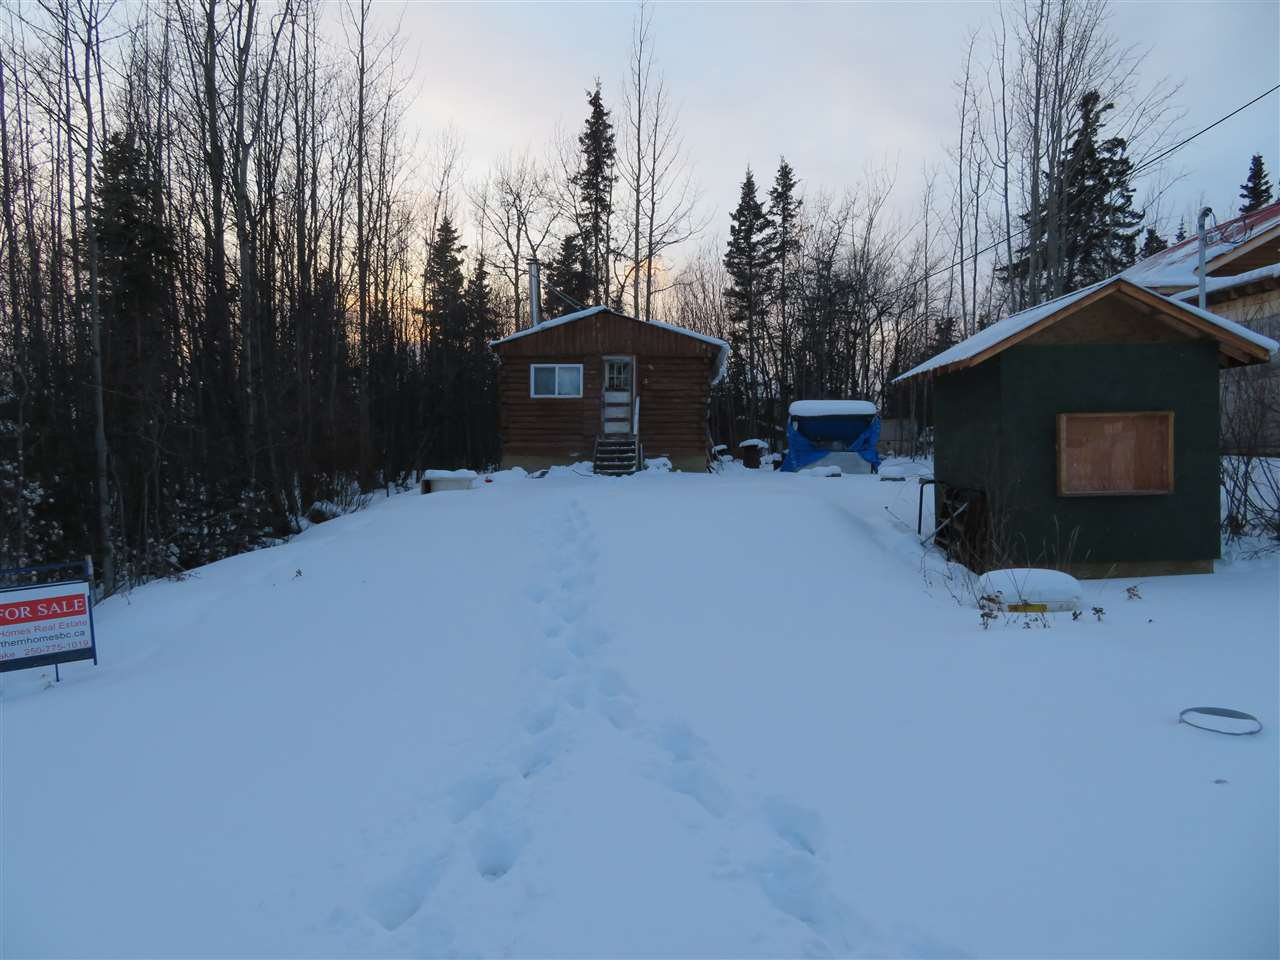 Main Photo: LOT 10 6TH Street: Atlin House for sale (Terrace (Zone 88))  : MLS®# R2405507